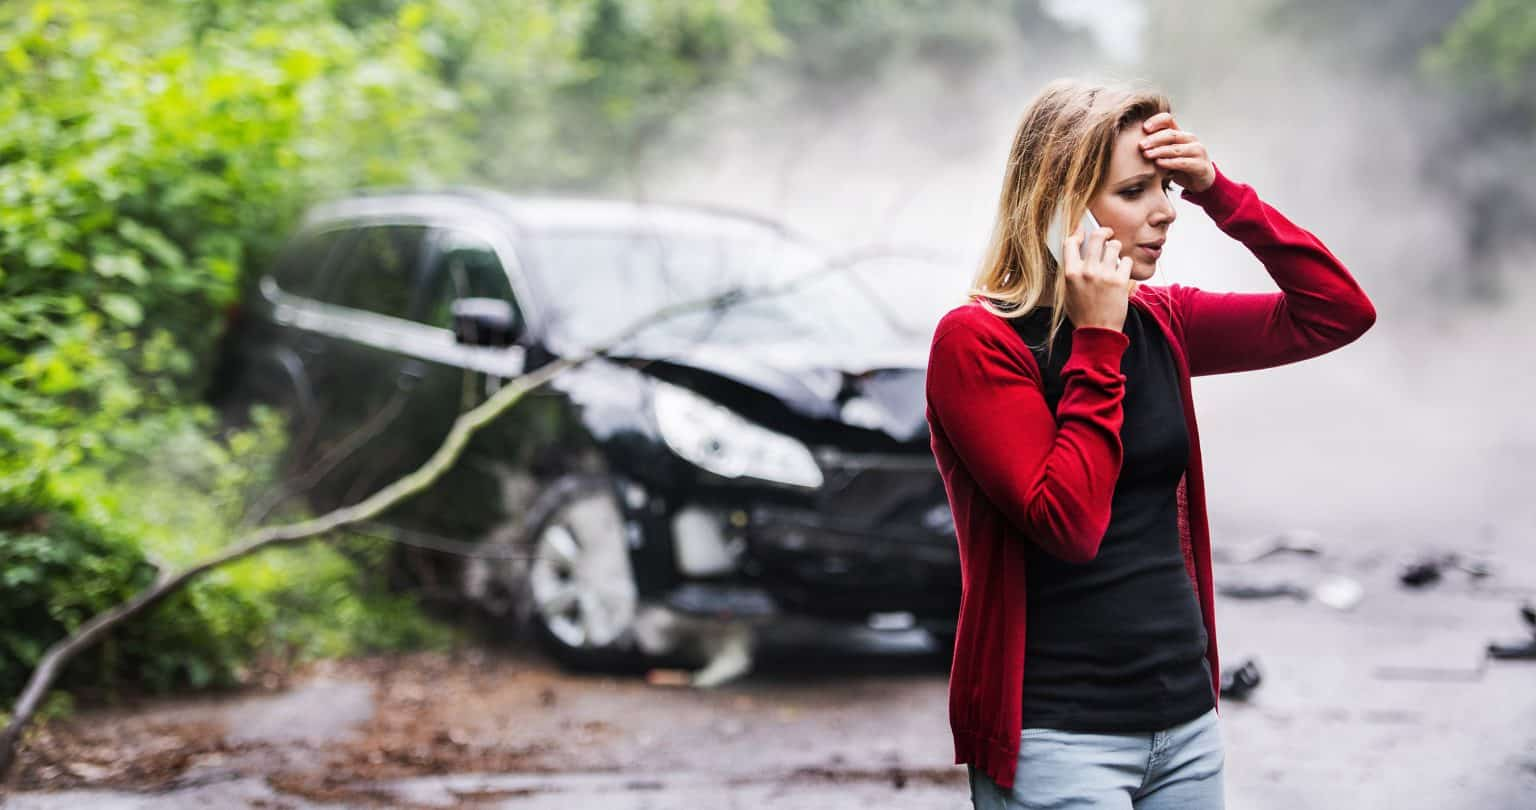 woman involved in motor vehicle accident is in shock